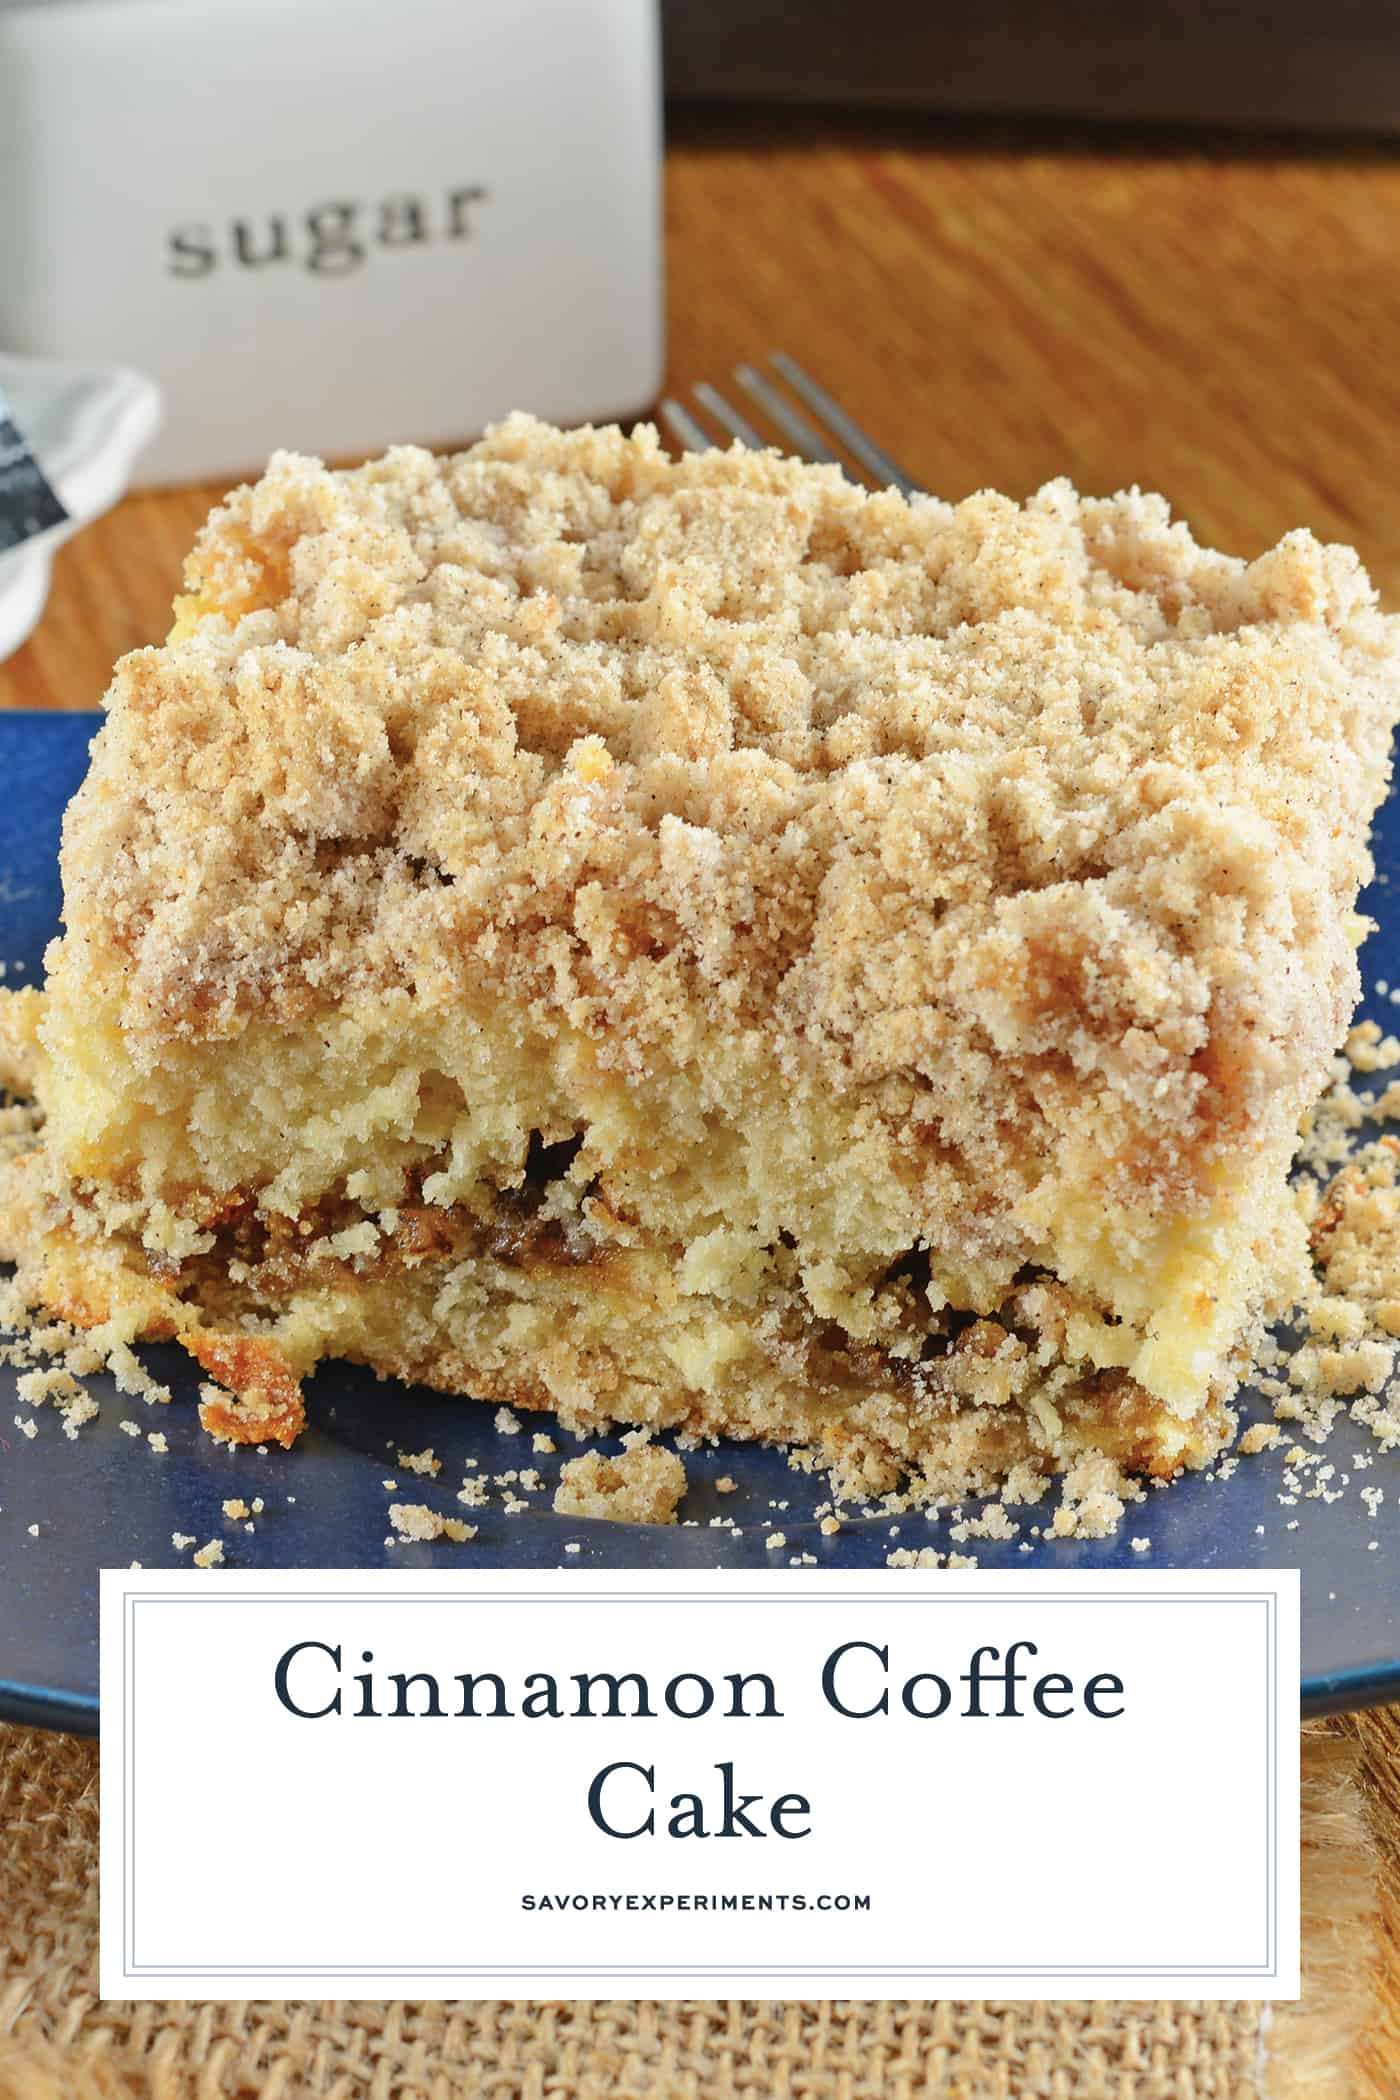 This is a classic Cinnamon Coffee Cake. Cinnamon streusel topping and a ribbon of brown sugar filling make this moist cake perfect for breakfast or brunch. #cinnamoncoffeecake #bestcoffeecake www.savoryexperiments.com